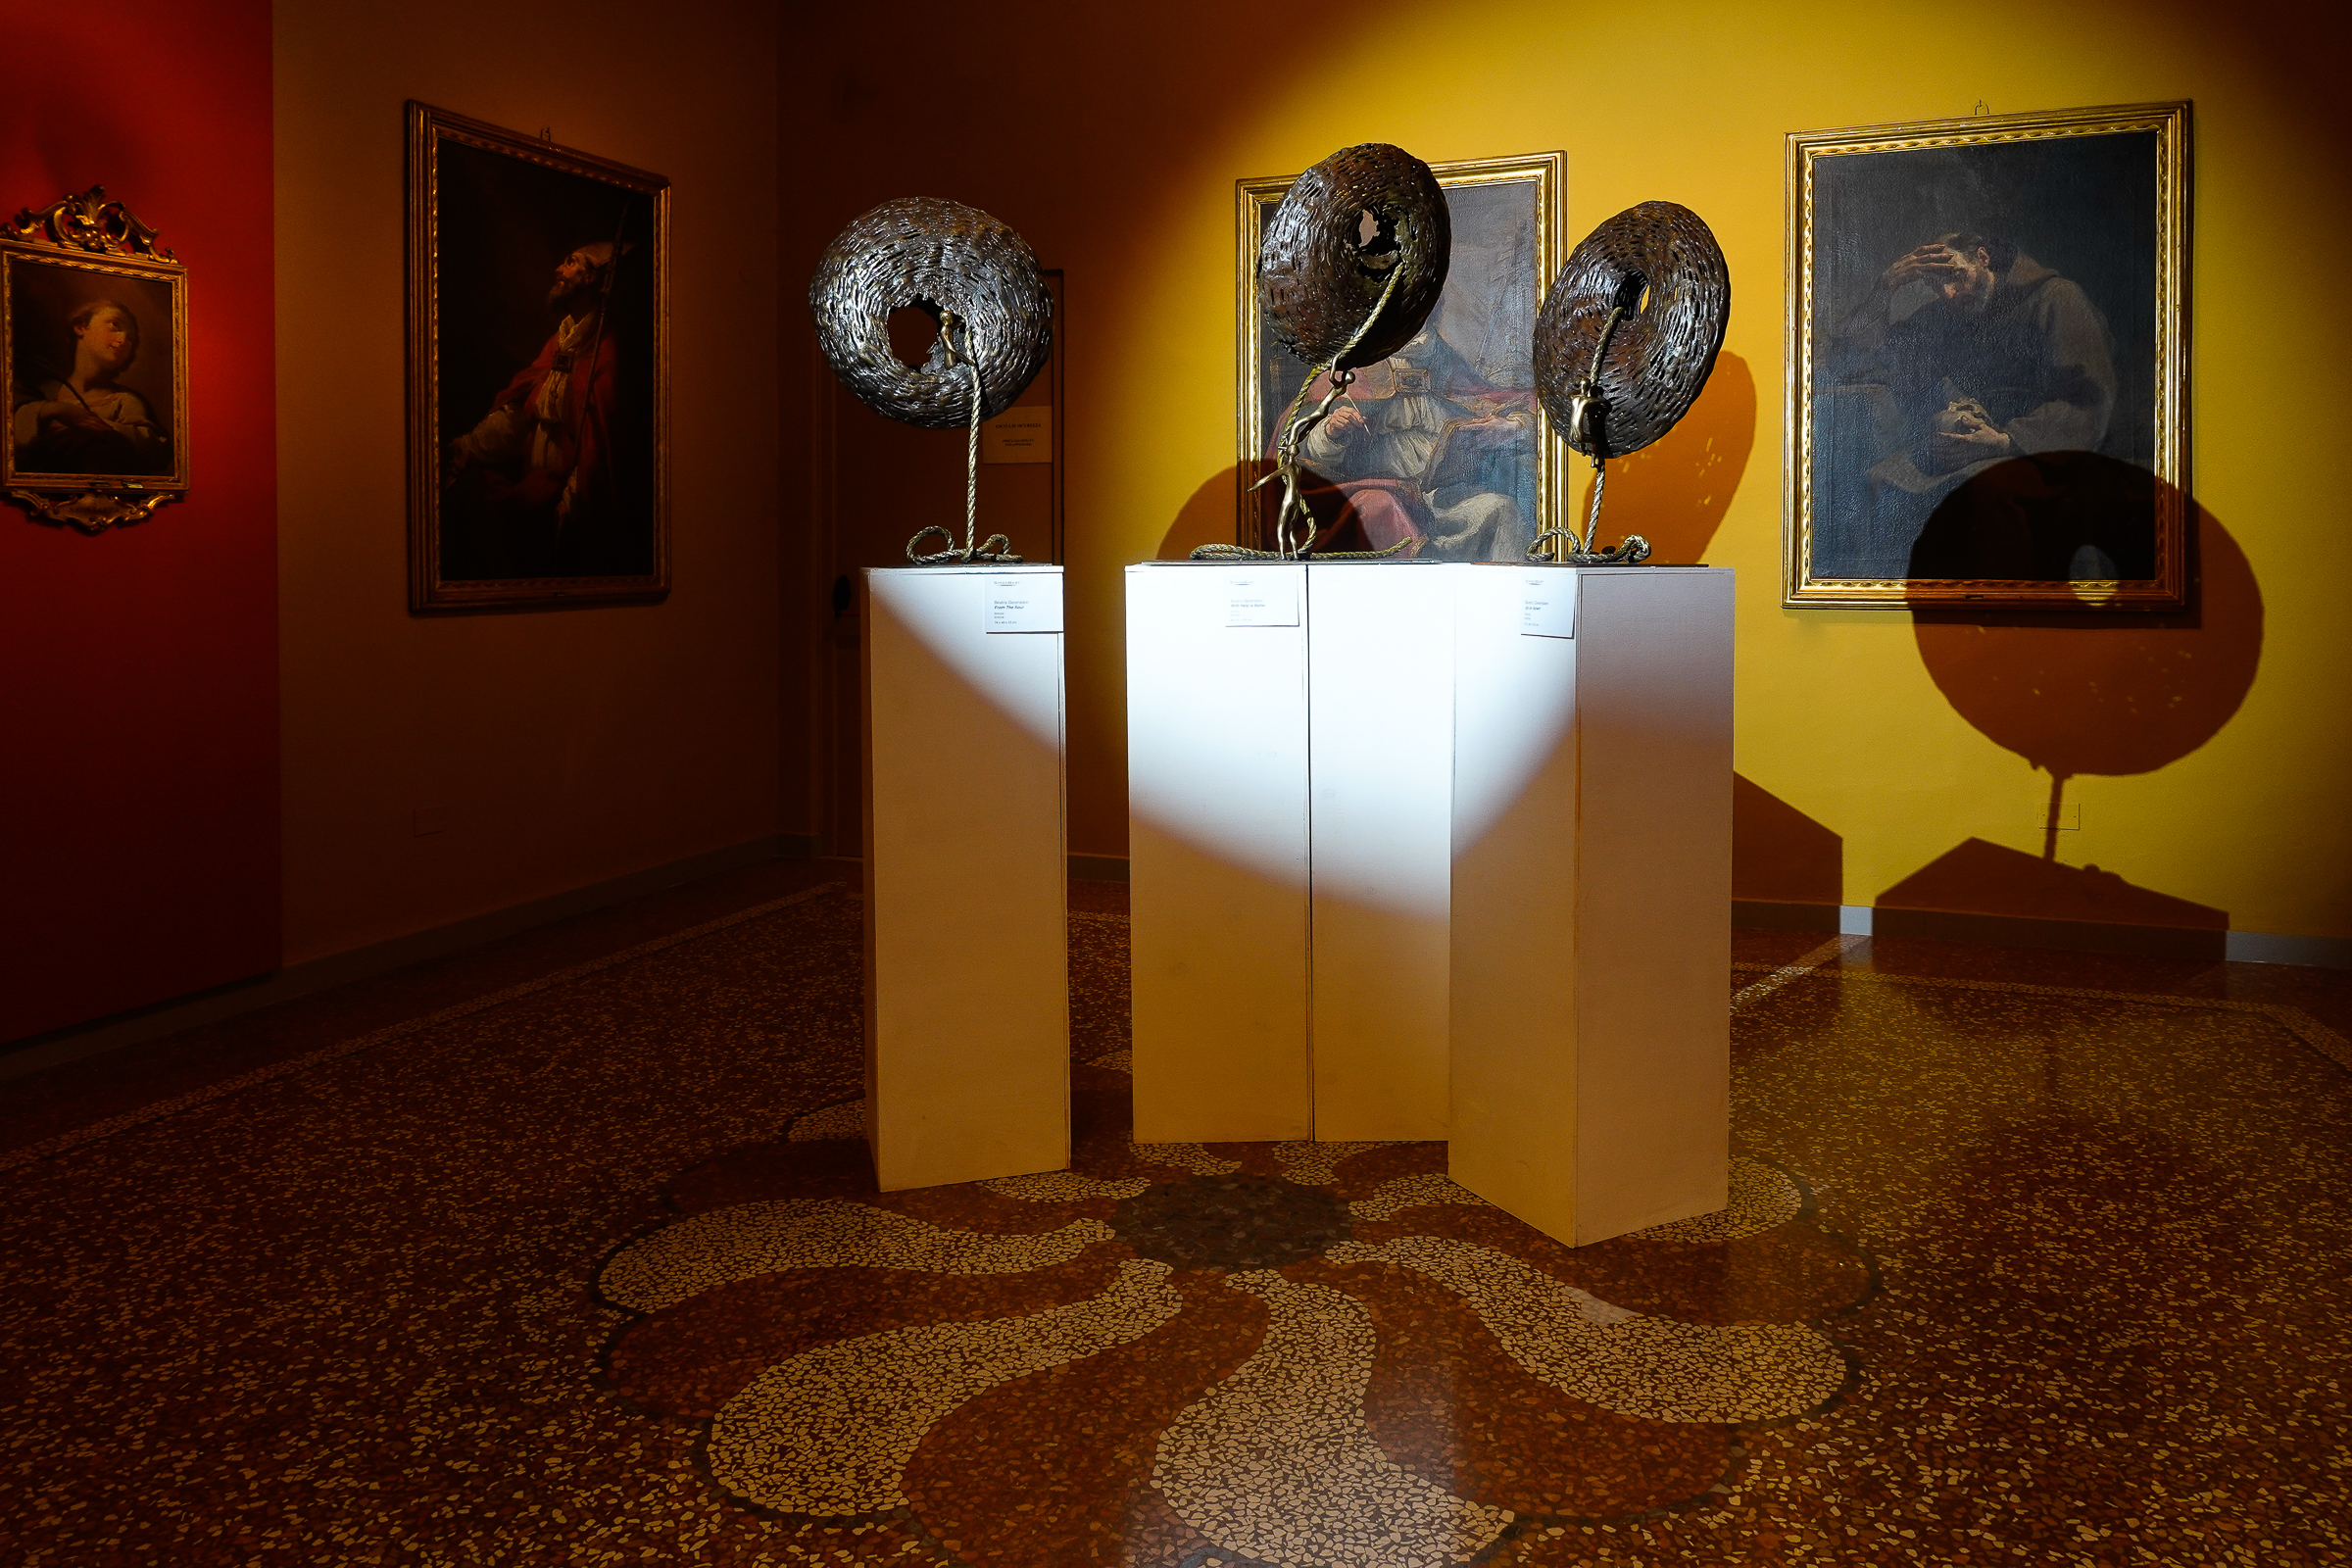 From the Soul, With Help is Better and Up or down, sculptures by Beatriz Gerenstein at the museum la quadreria in Bologna Italy